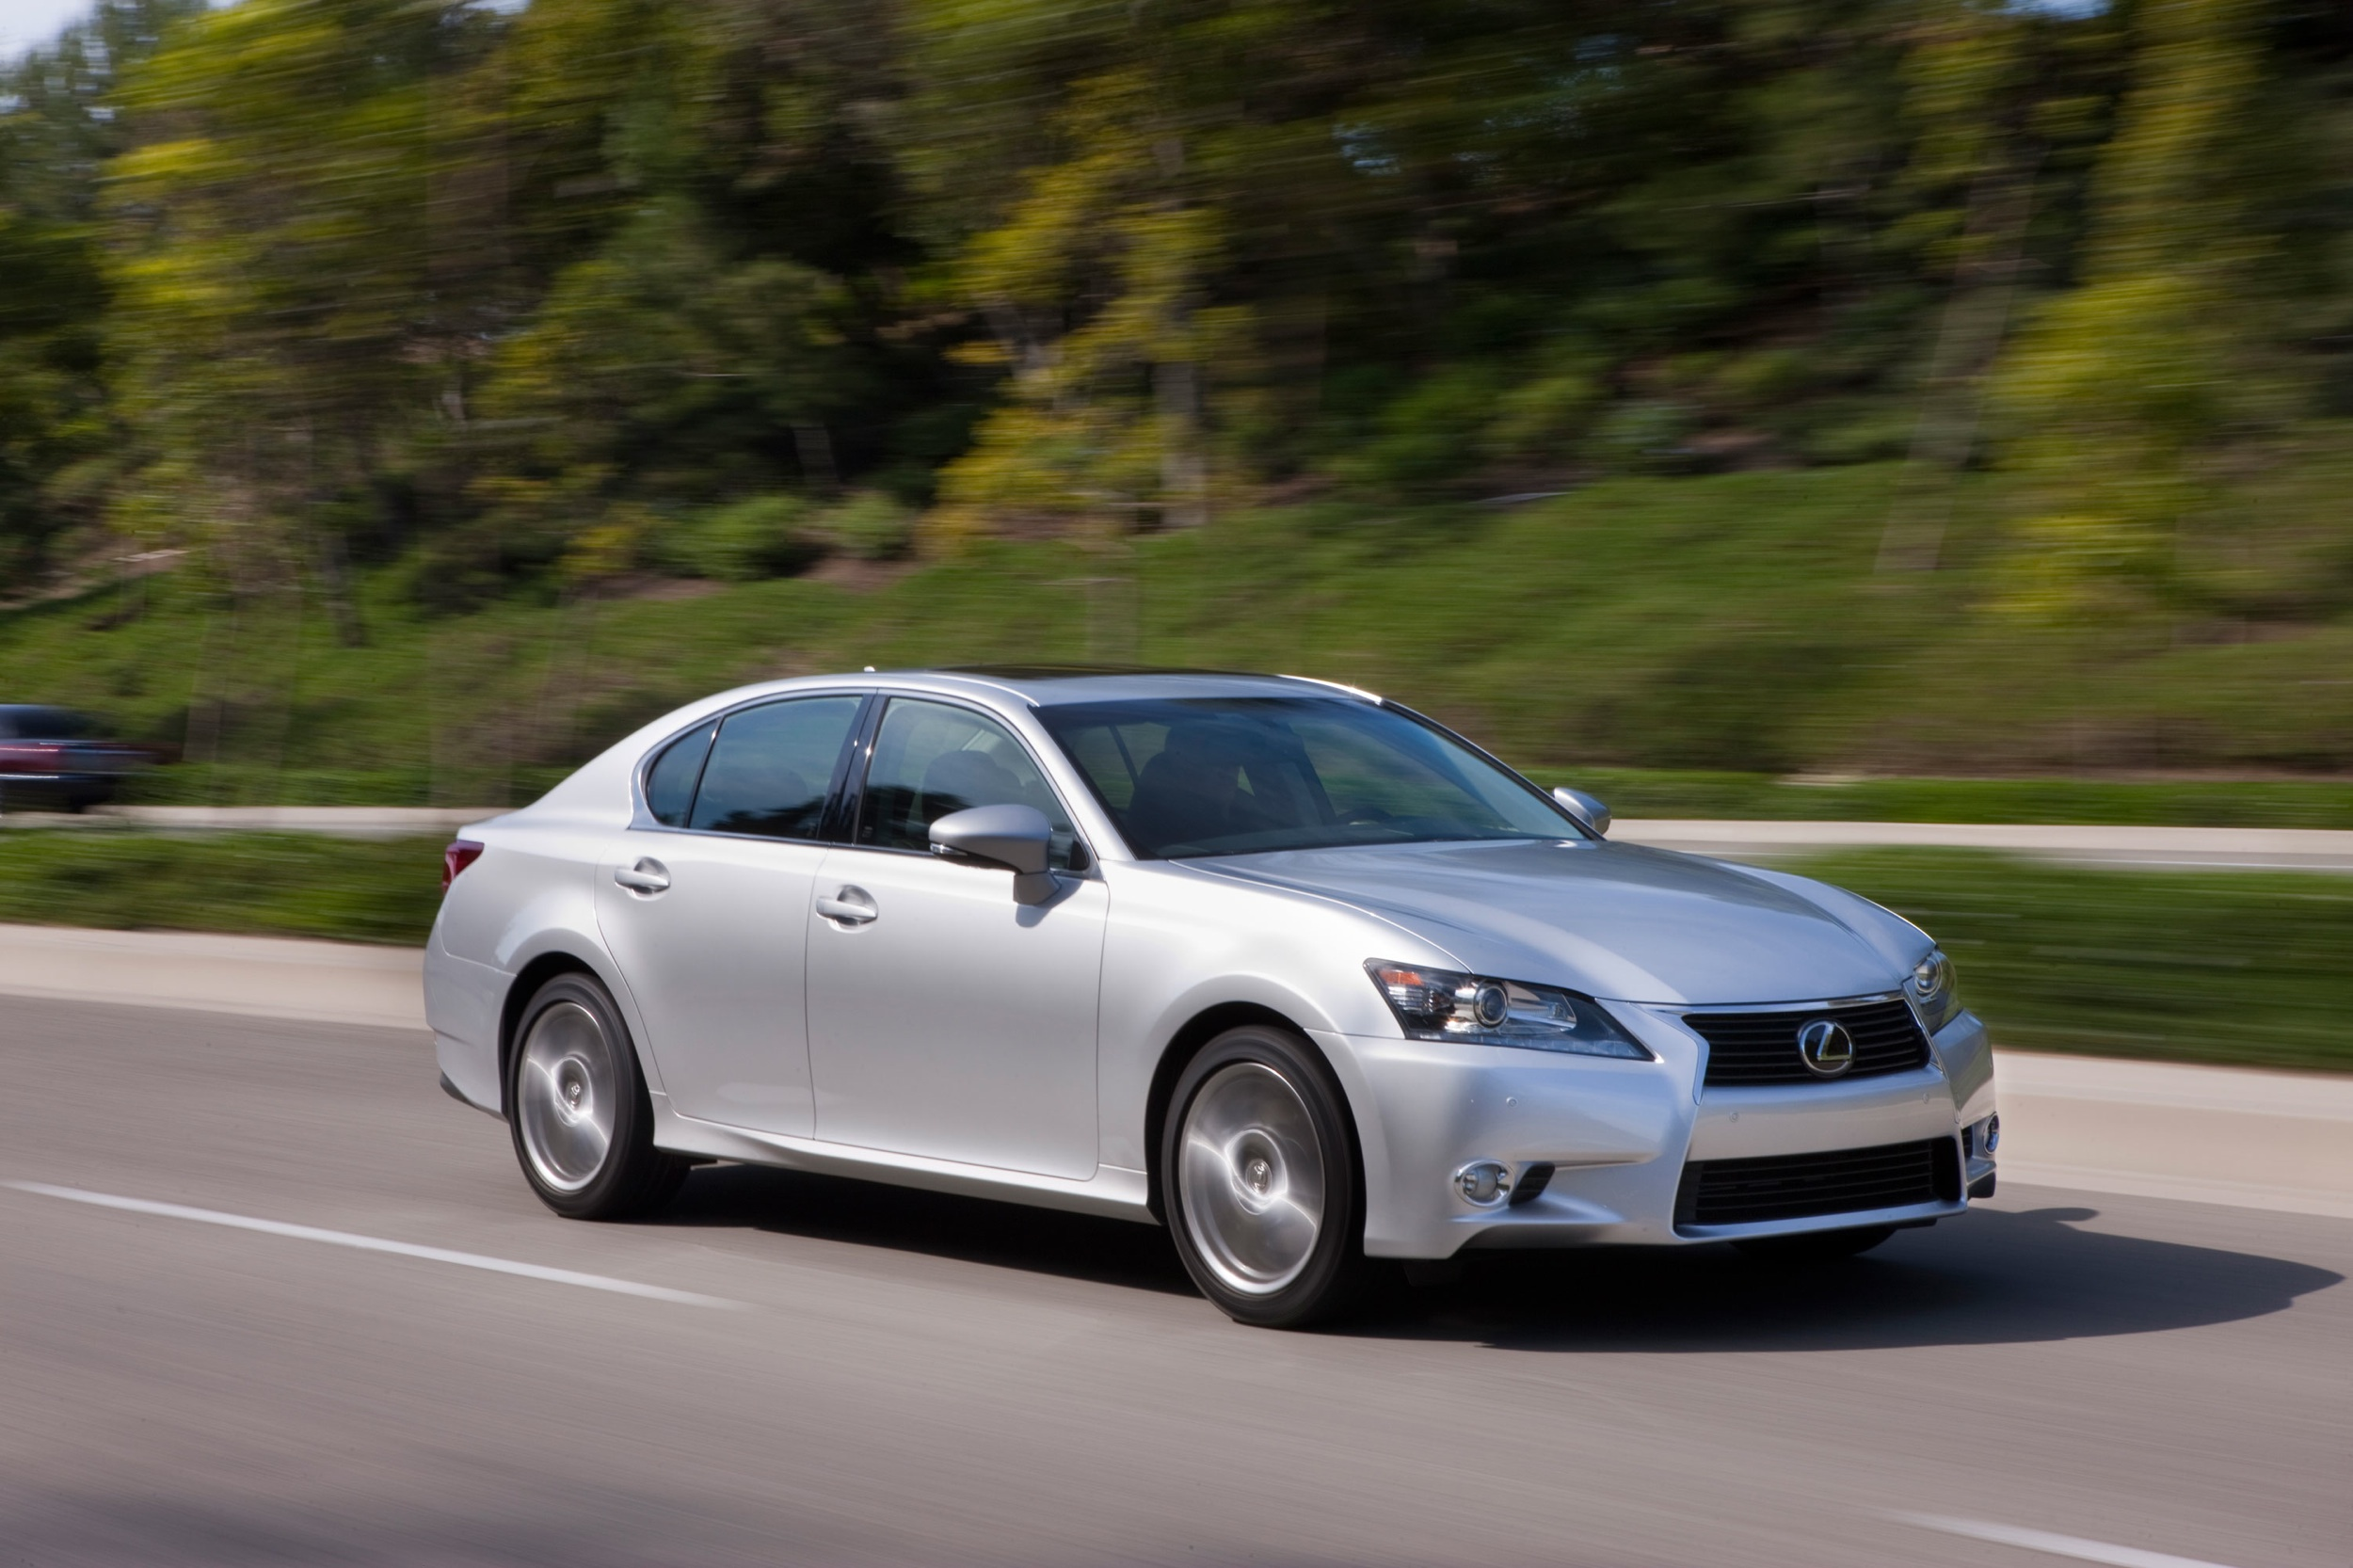 Review Lexus GS 350 AWD